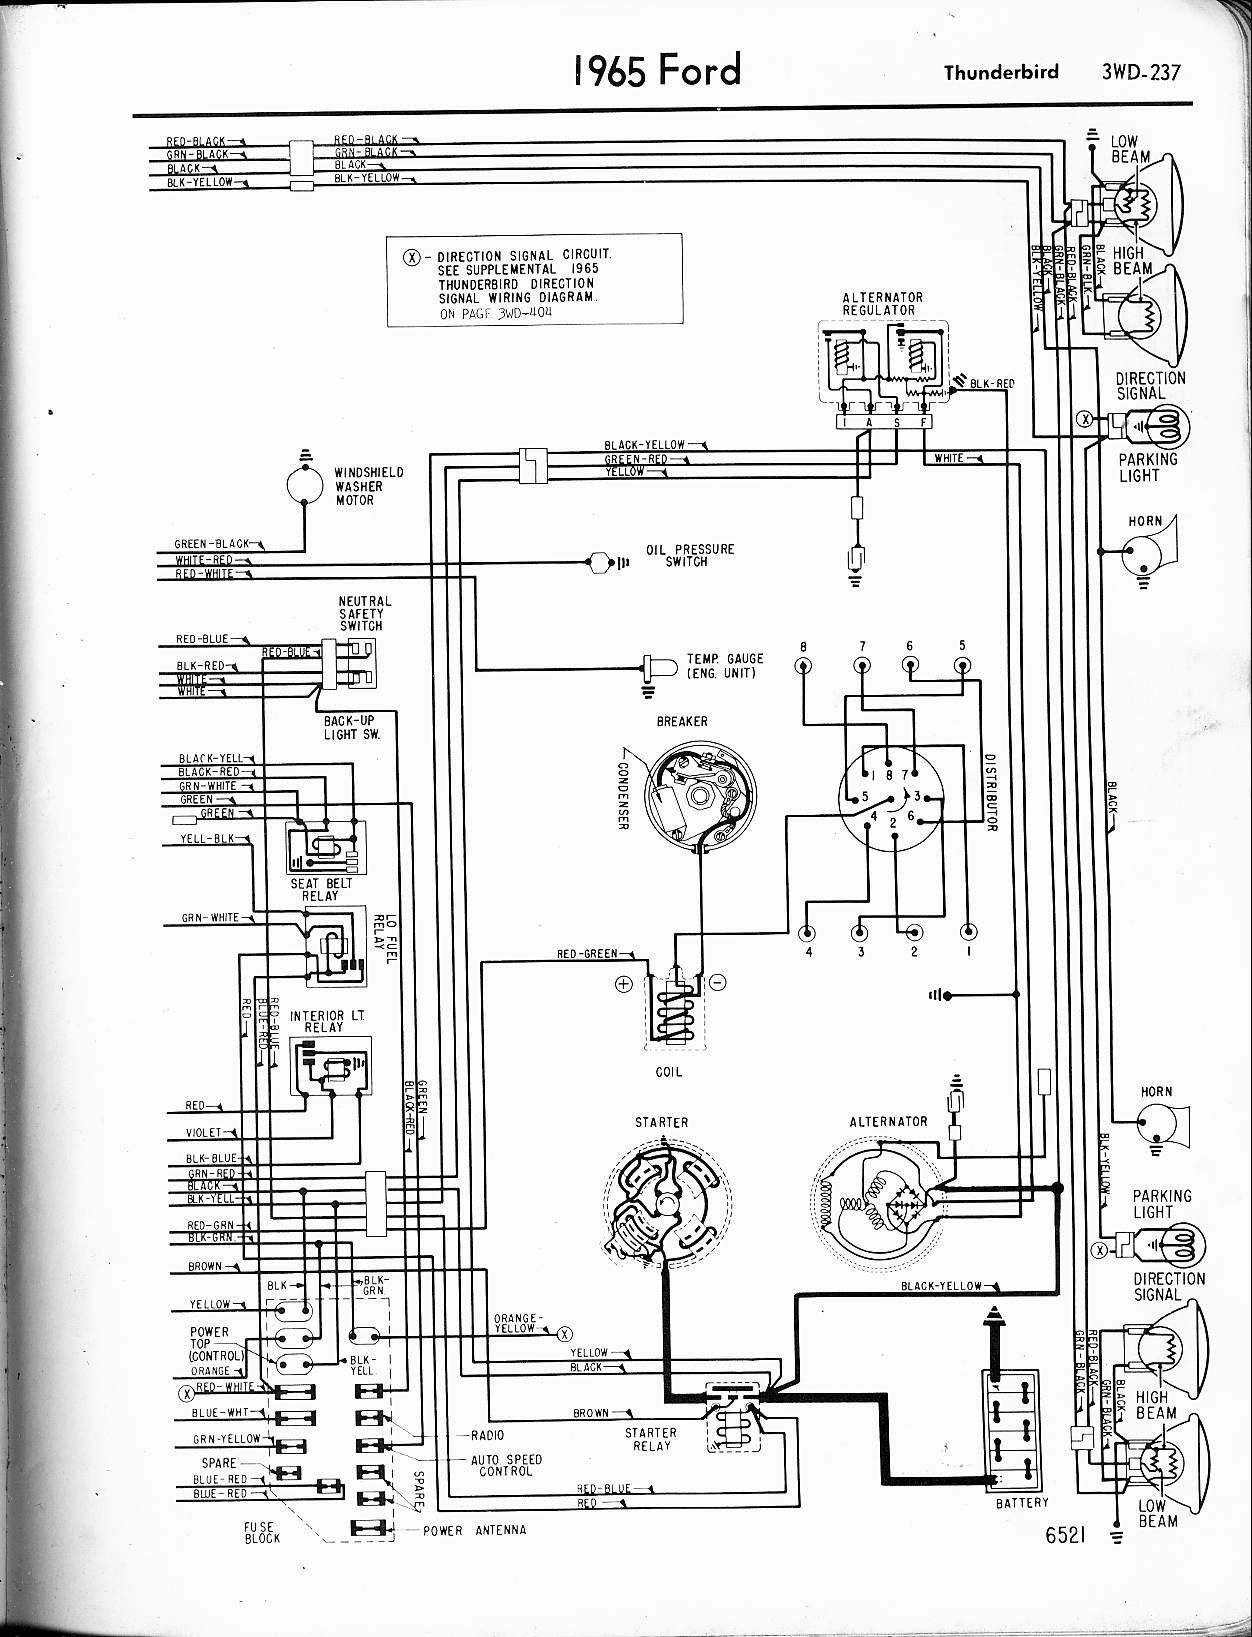 New Need Wiring Diagram Diagram Wiringdiagram Diagramming Diagramm Visuals Visualisation Graphical Diagram Wire Ford Thunderbird